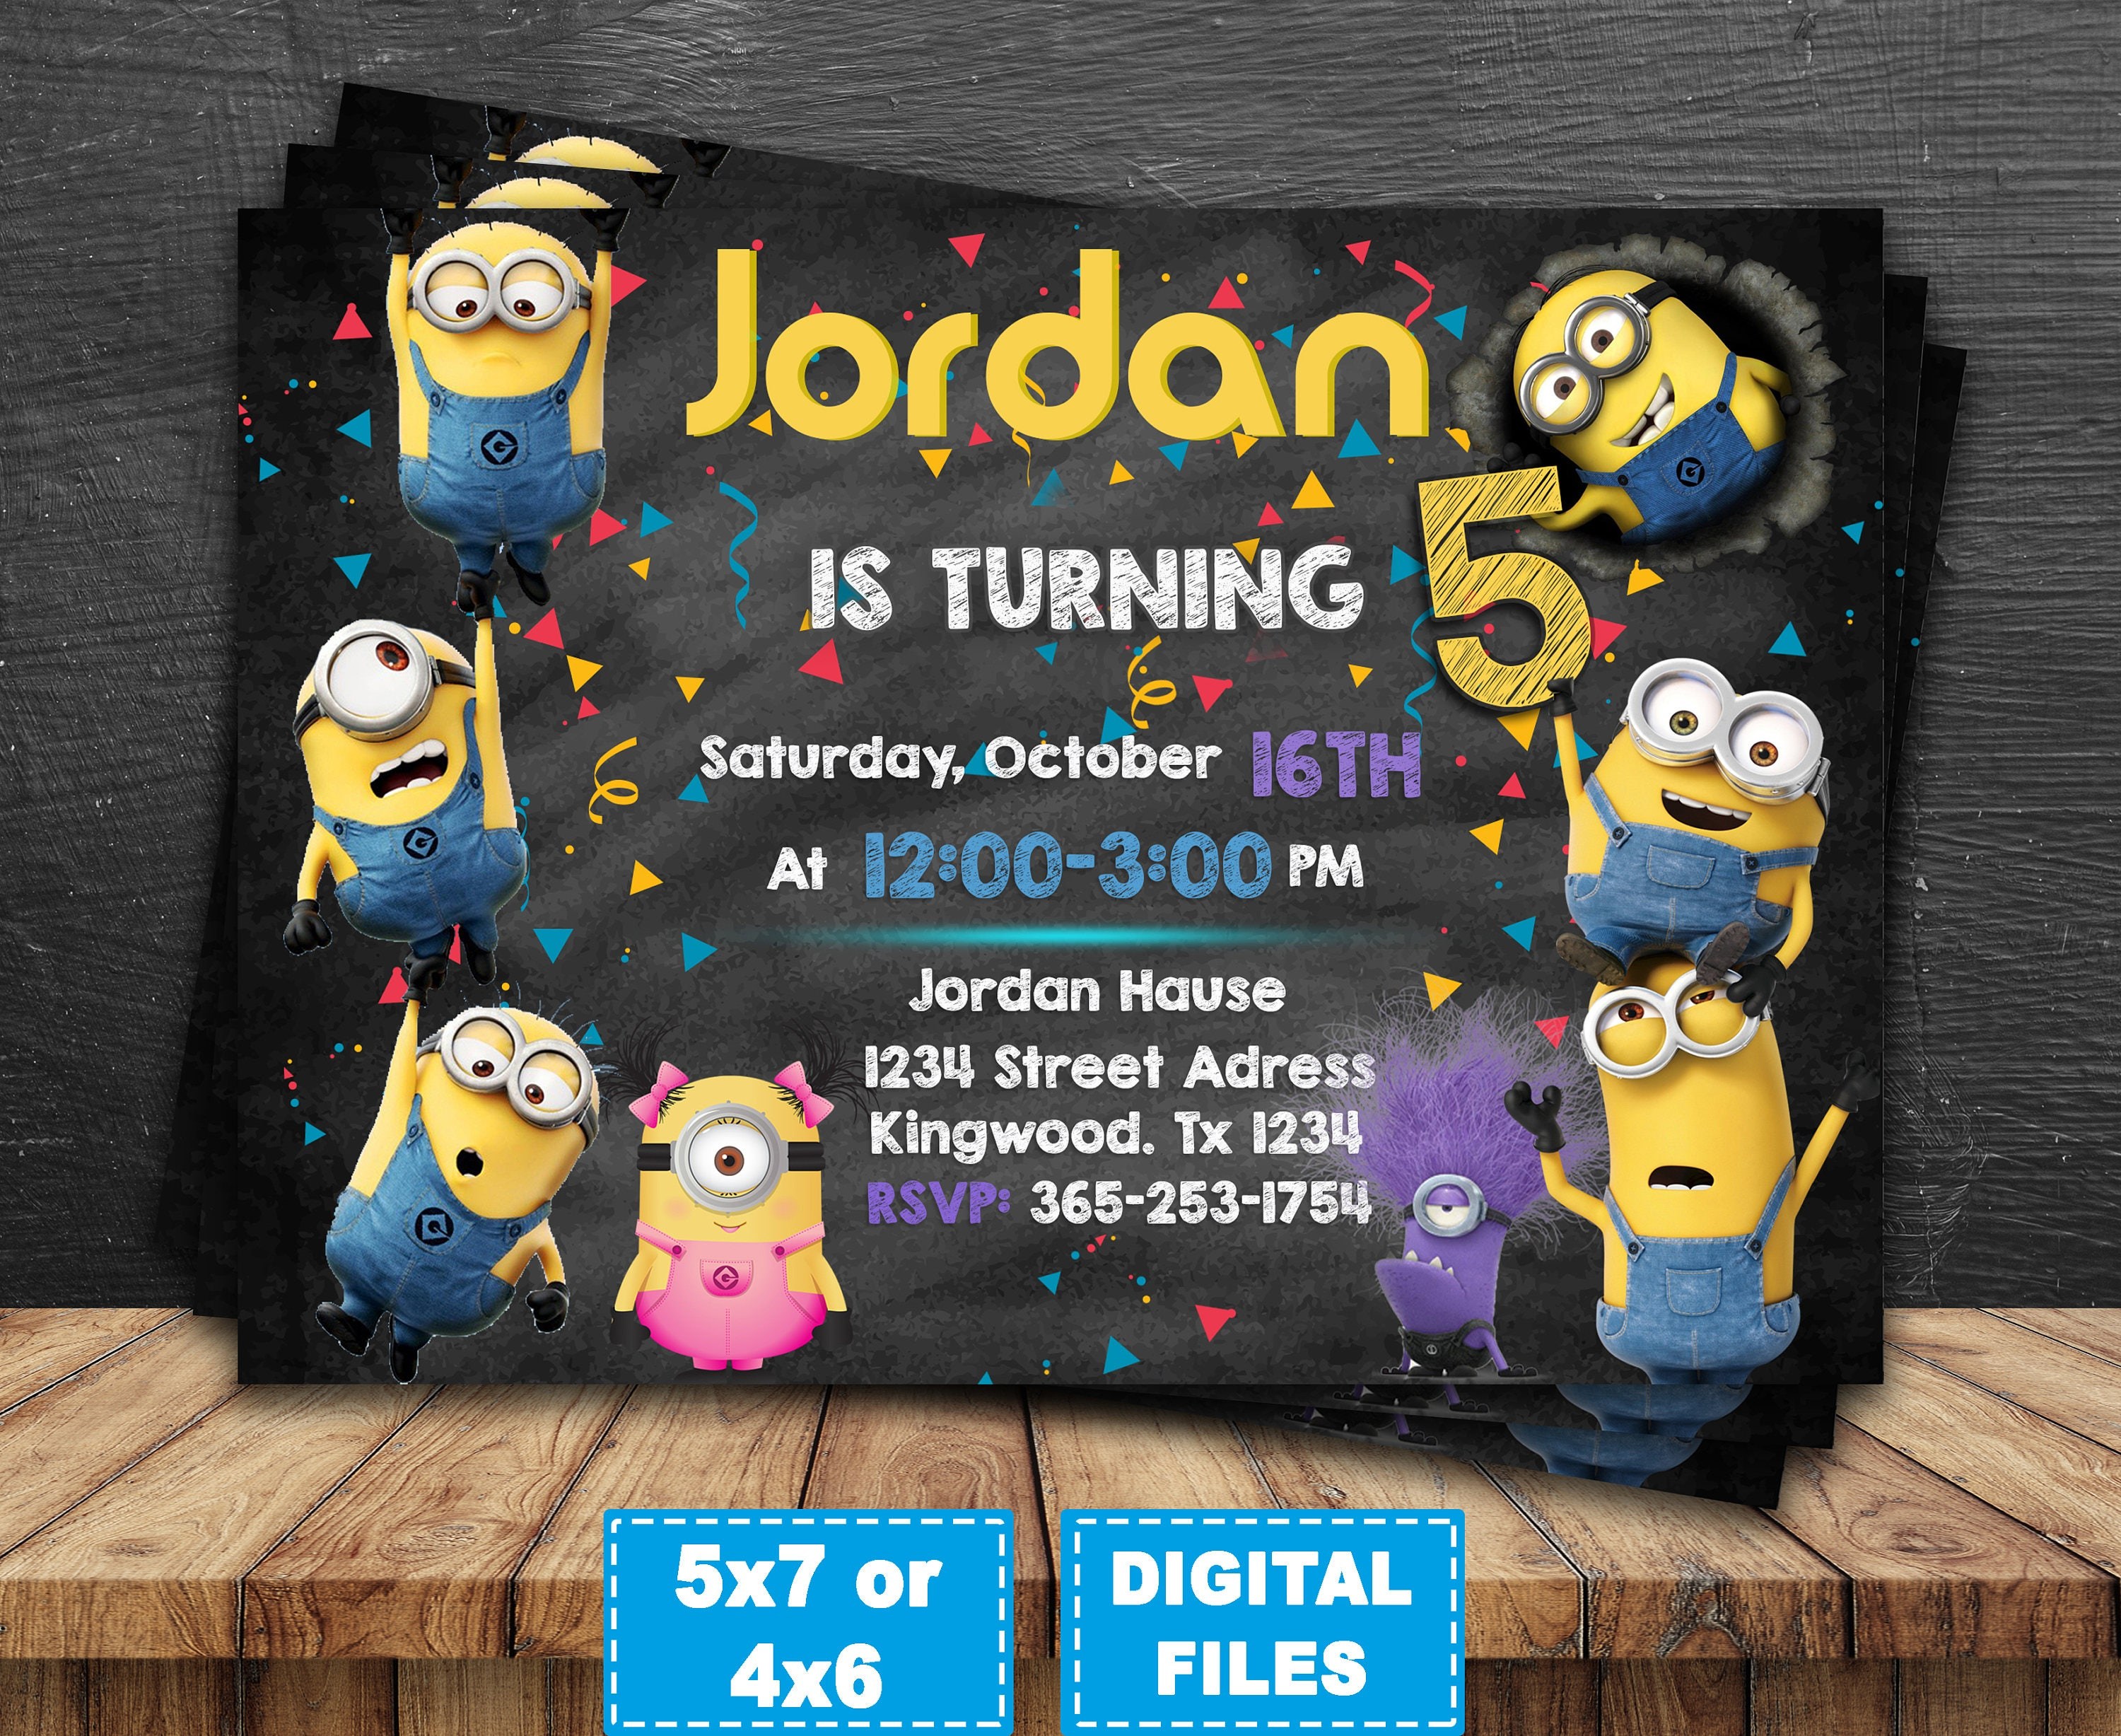 picture regarding Minions Invitations Printable called Minions invitation, minions occasion invite, minions birthday, minion birthday invites, minions electronic, minions printable, banana minions.